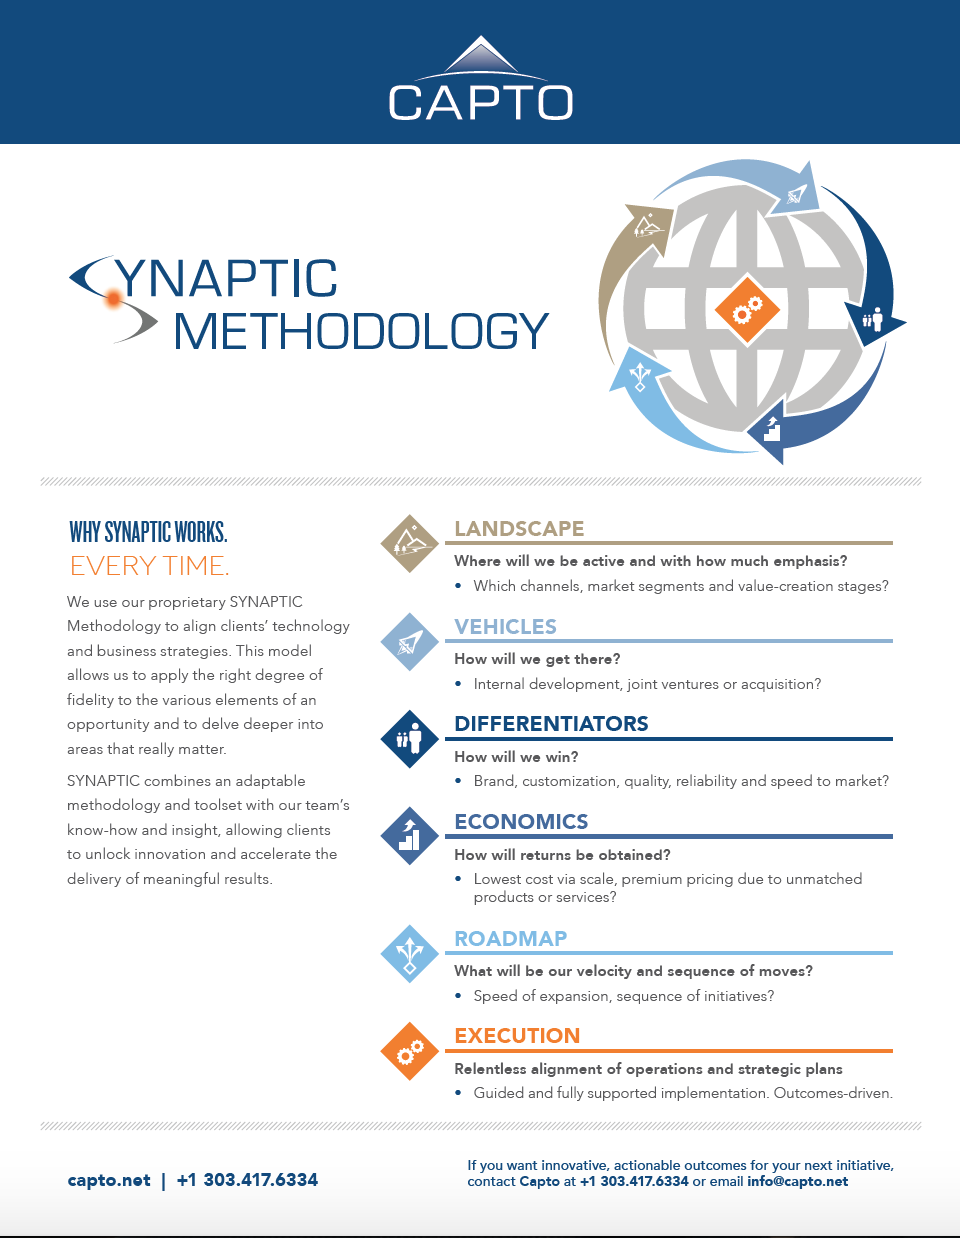 2017-03-30-Capto-Marketing SYNATPIC Strategy Method Overview v1.0.png